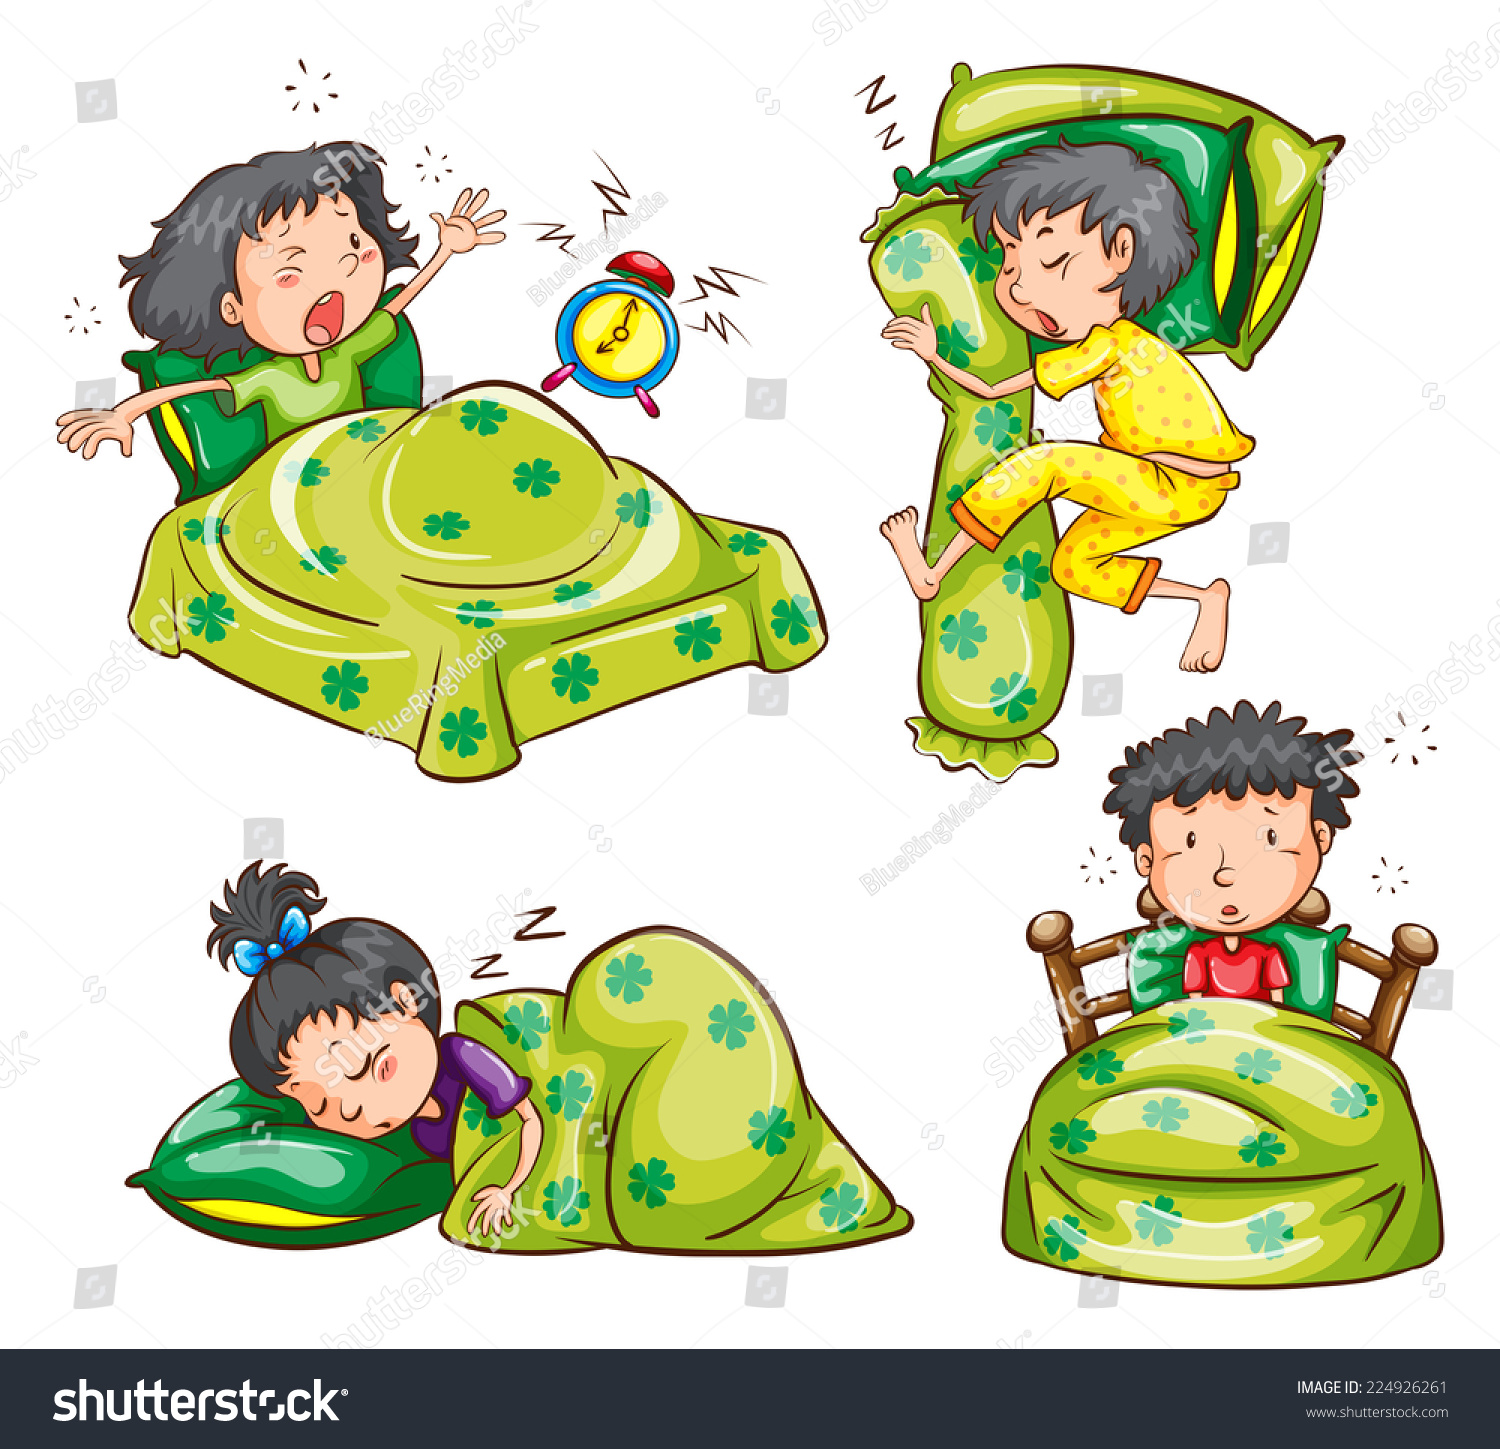 Illustration of boys and girls in bed 224926261 for Boys and girls in bed